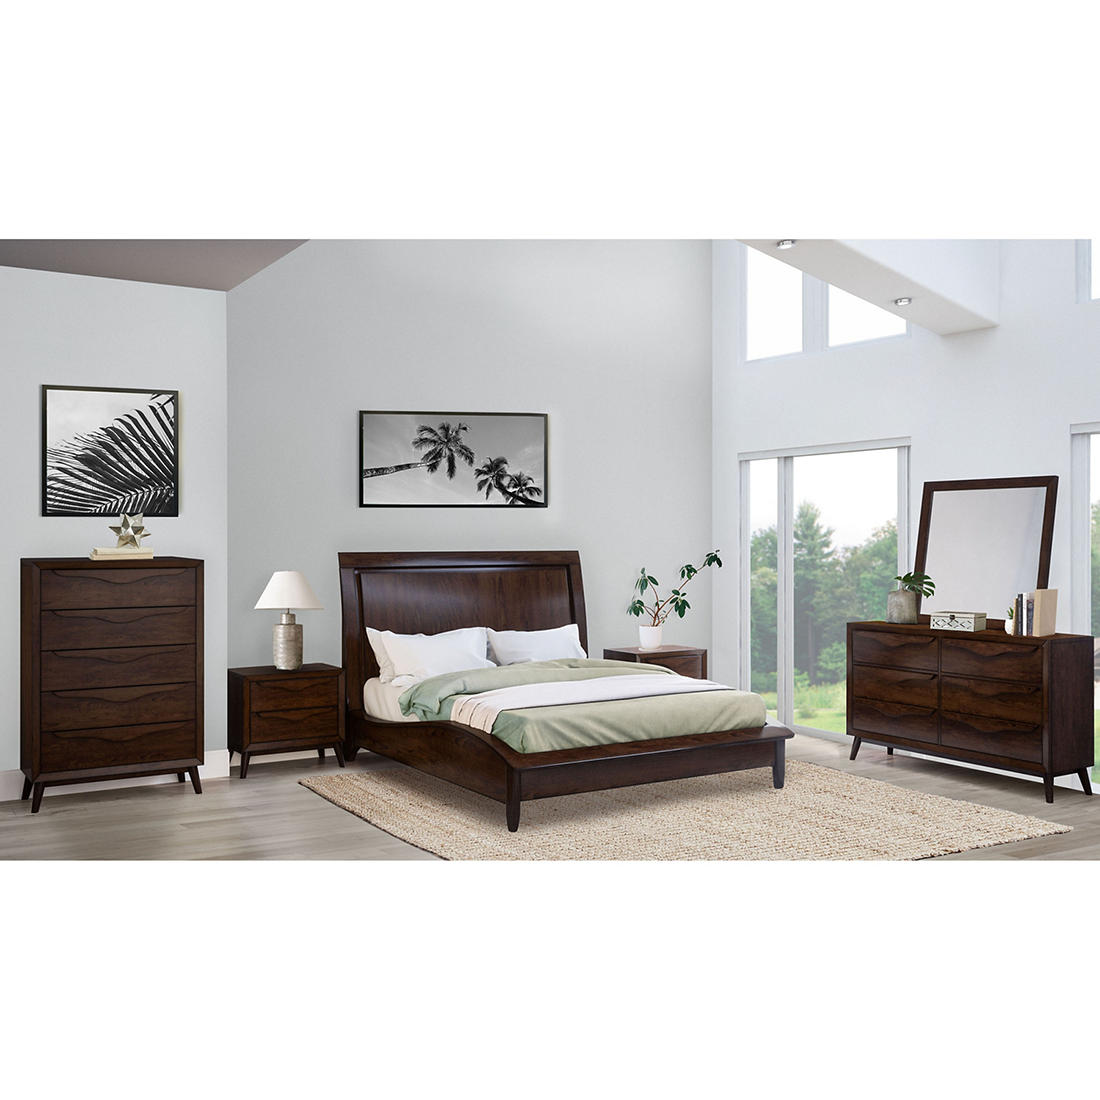 Abbyson Living Anson 6 Pc Queen Size Bedroom Set Brown